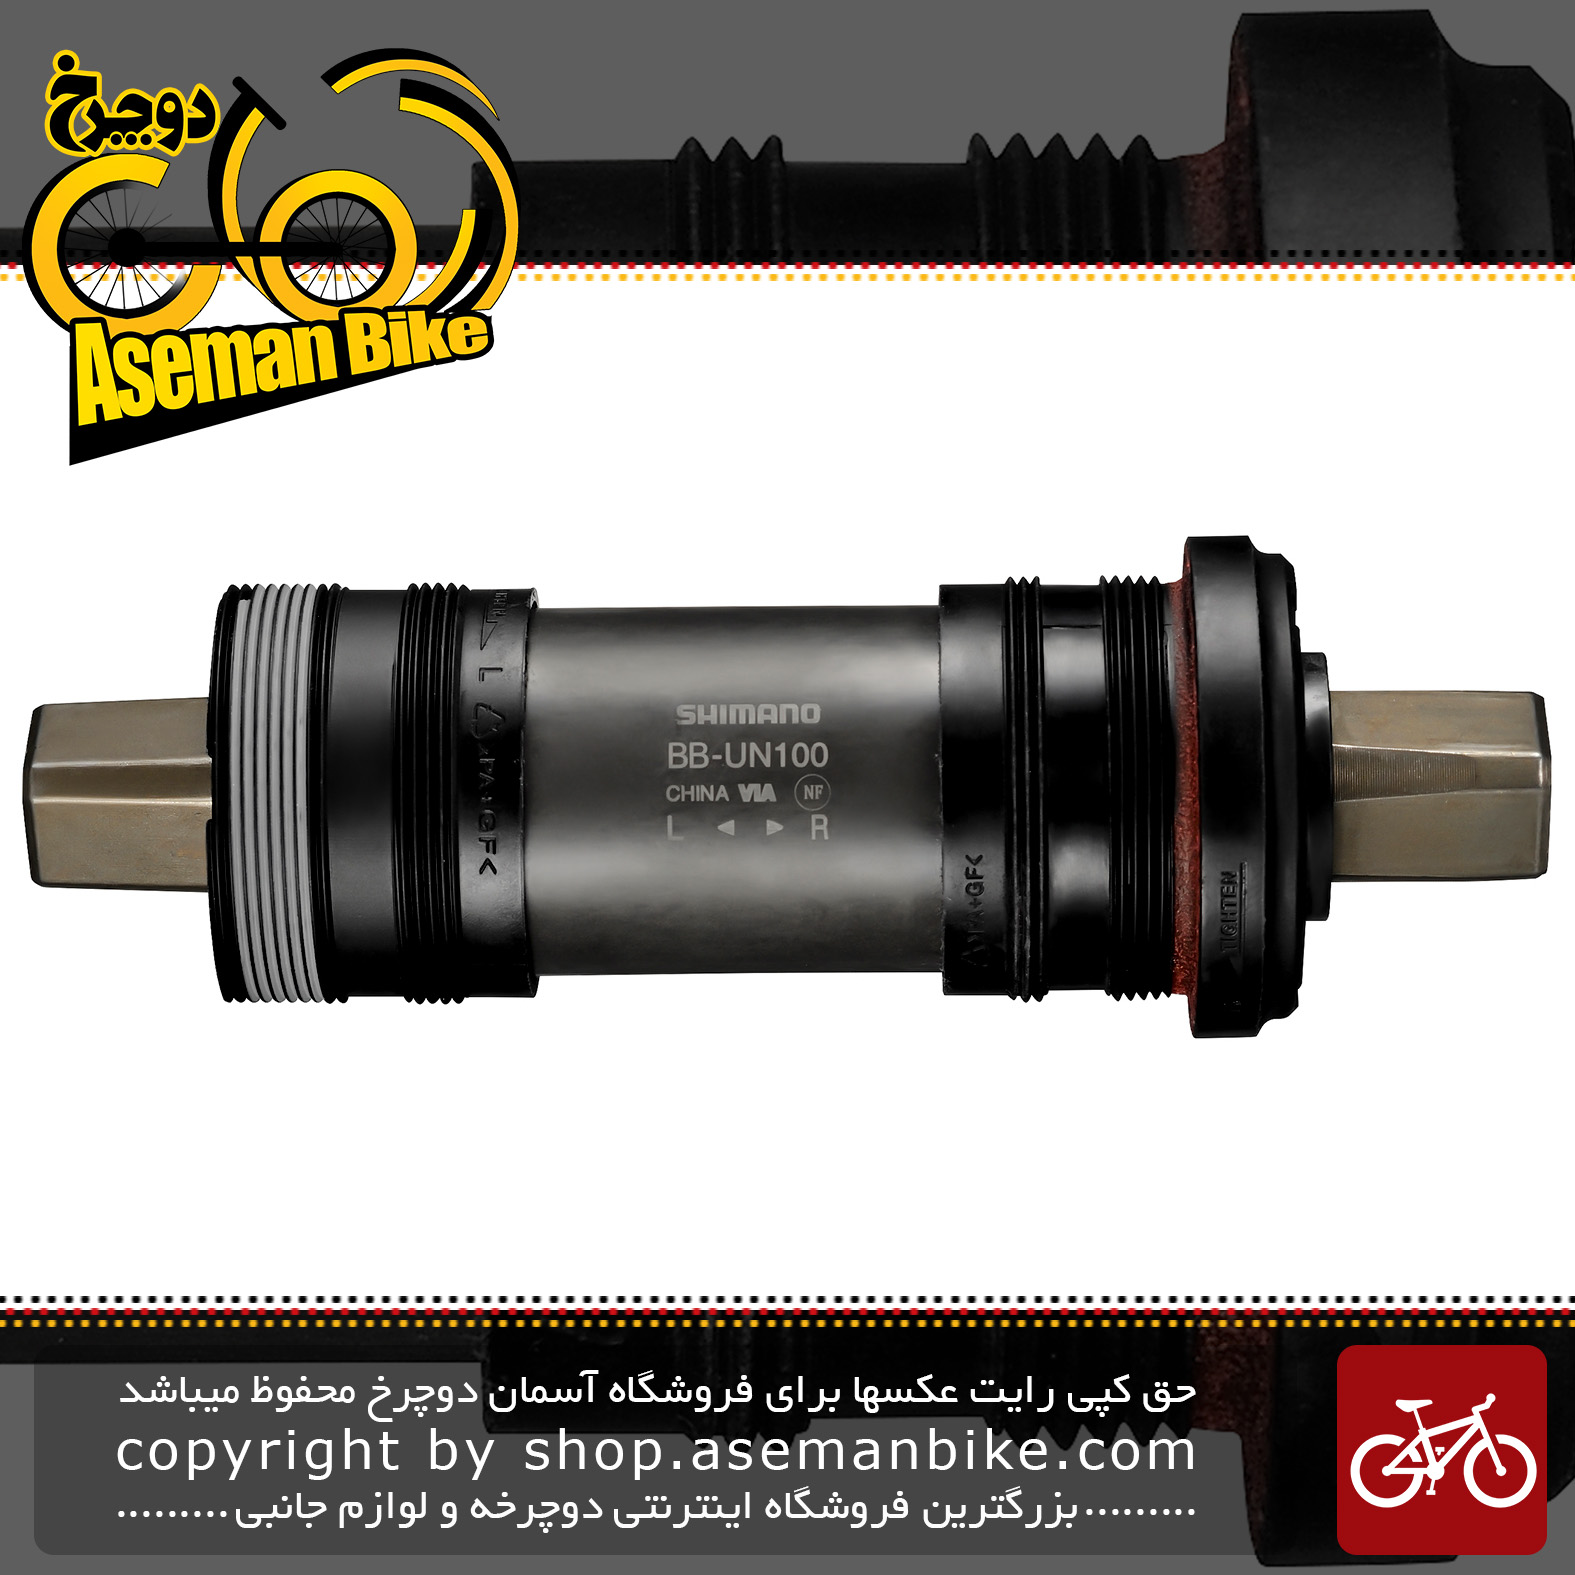 توپی تنه دوچرخه بلبرینگی شیمانو Shimano Tourney TX BB-UN100 Cartridge Bottom Bracket